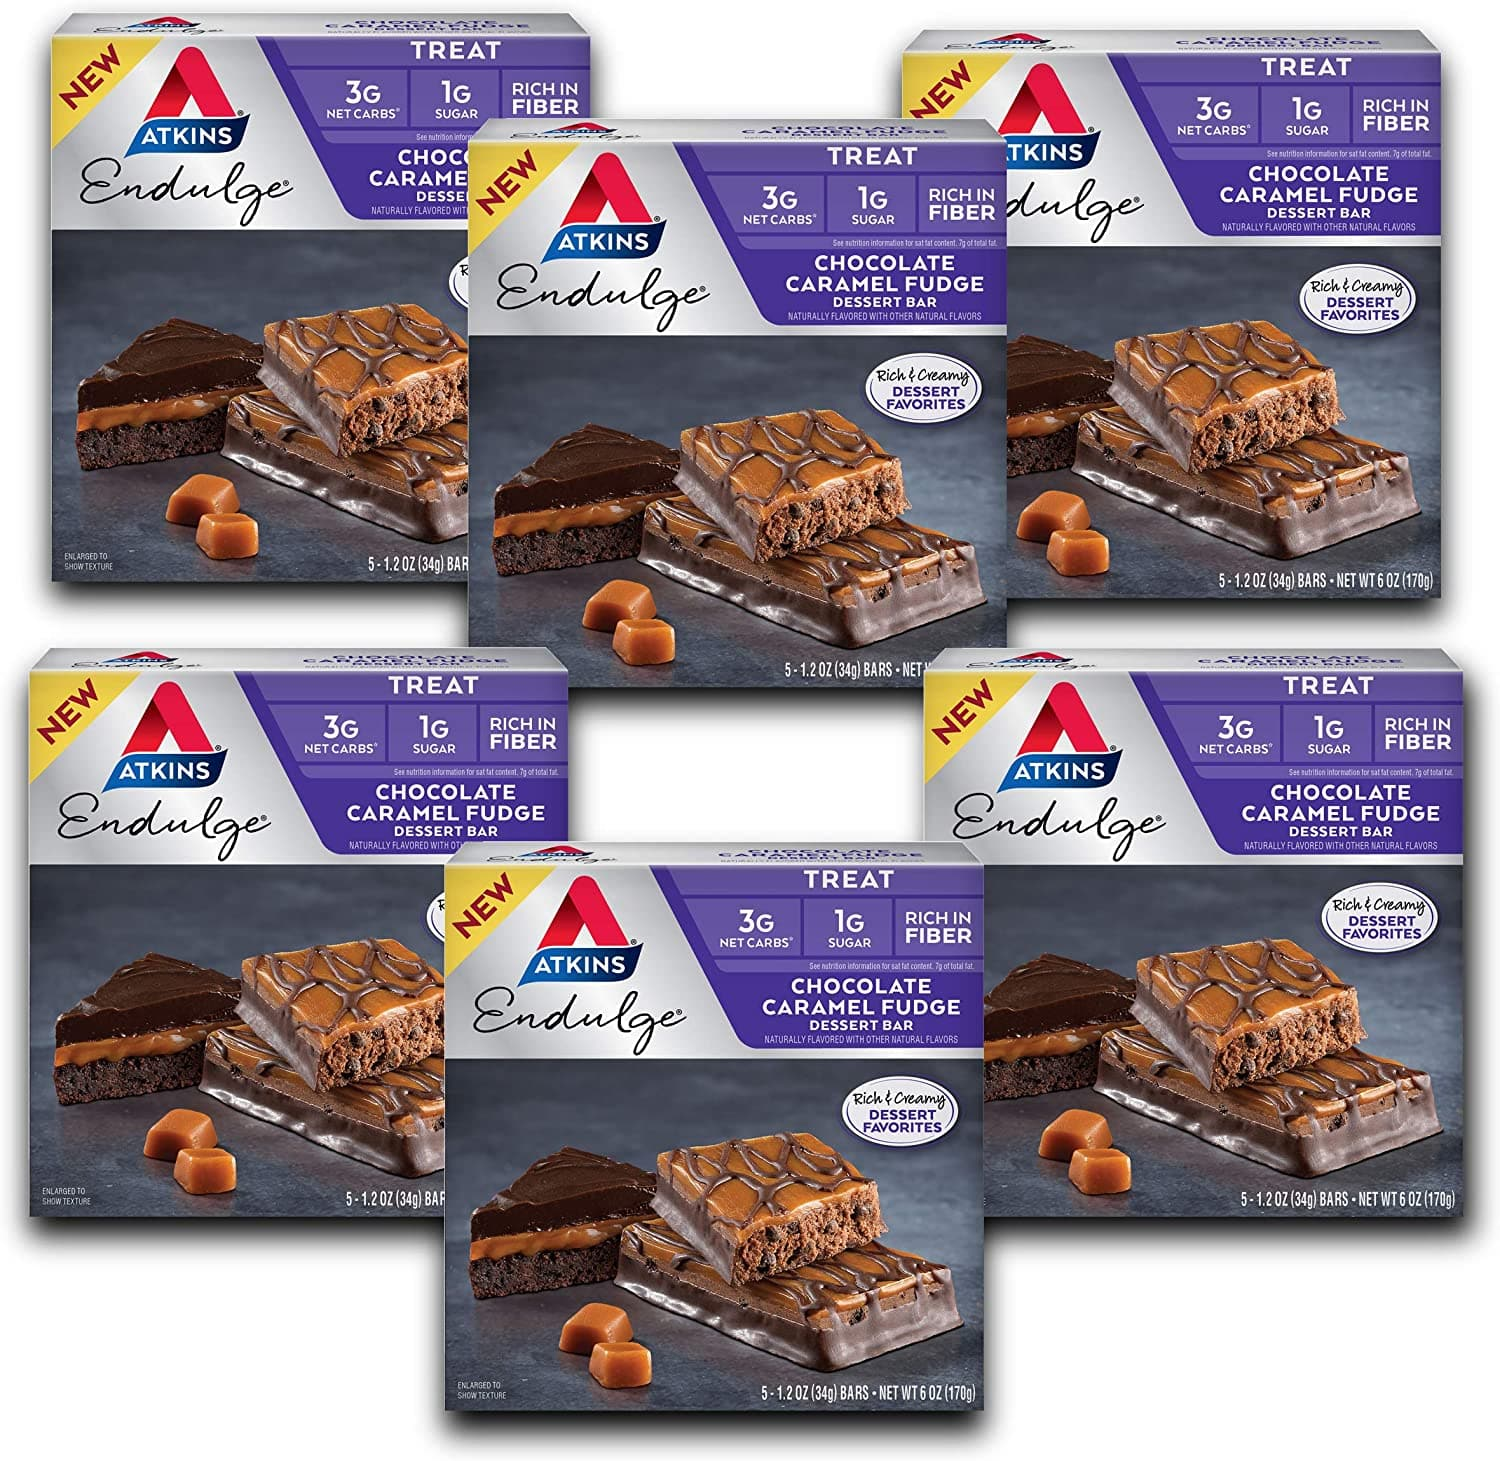 Atkins Endulge Treat Chocolate Caramel Fudge Dessert Bar (30 Bars) $12.77 @Amazon